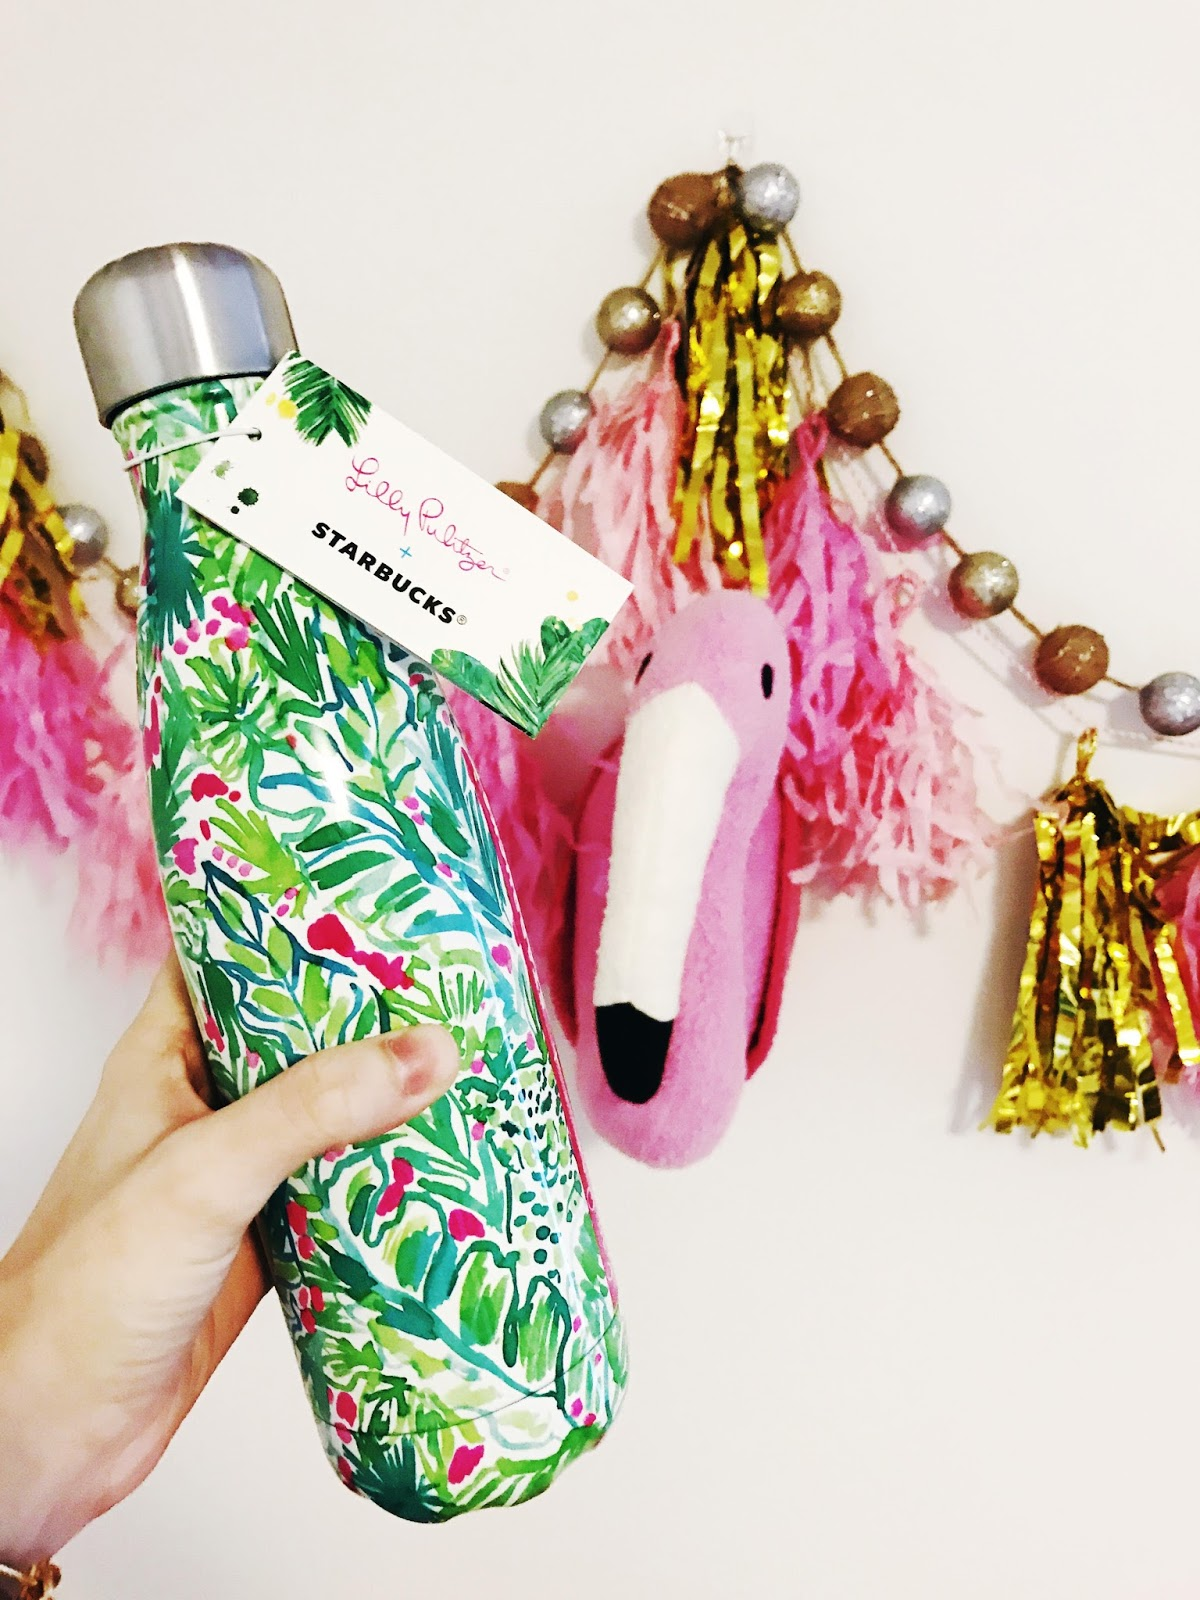 Sew Cute Lilly Starbucks Water Bottles Are Here